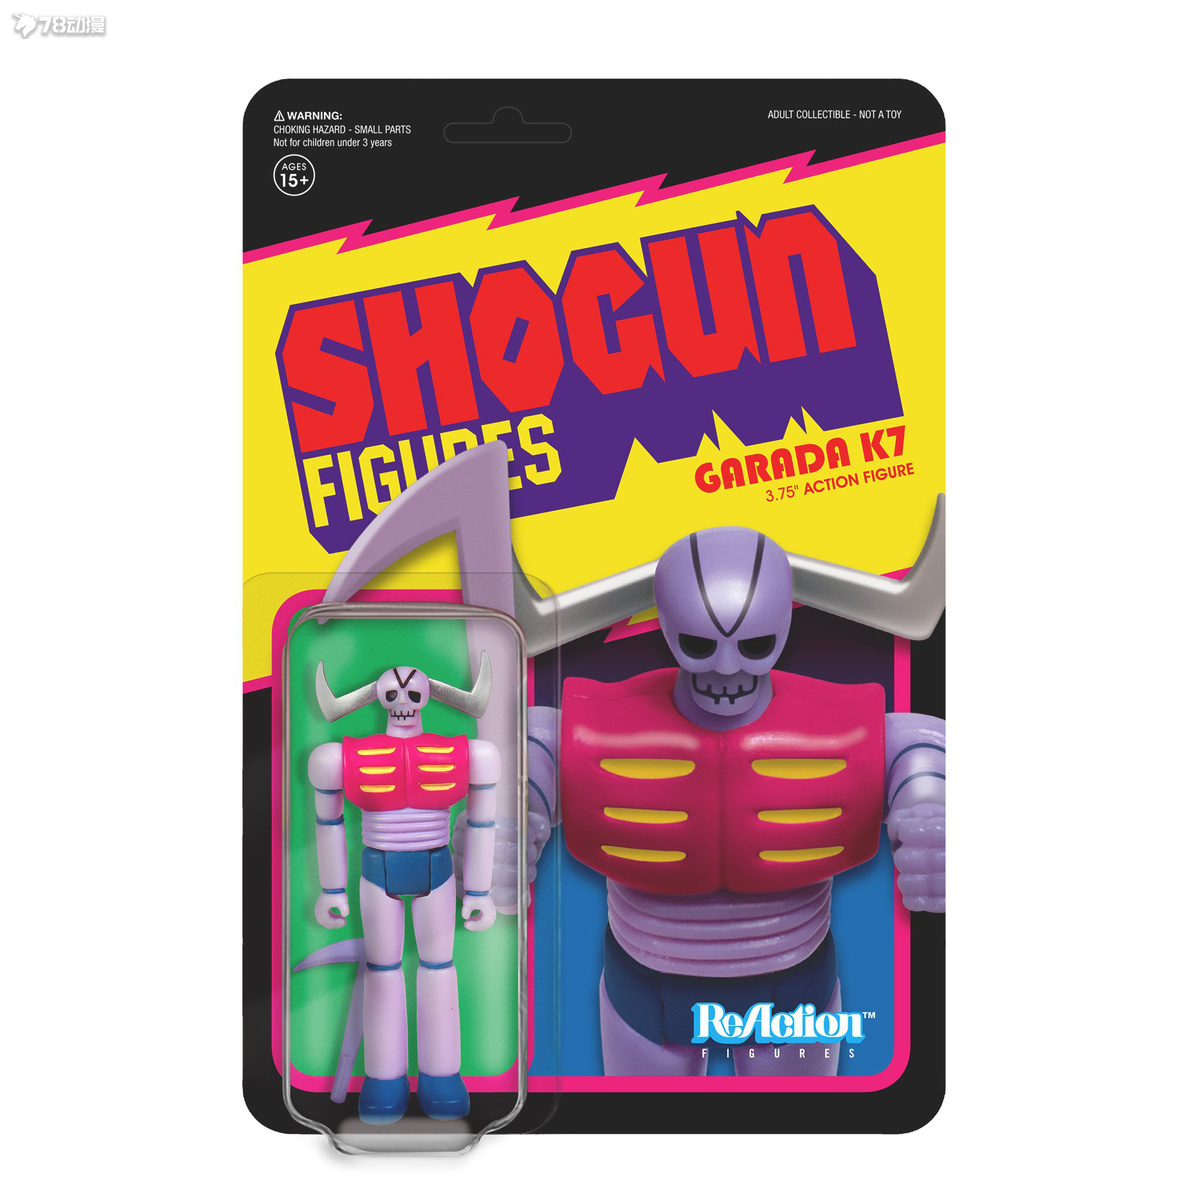 Shogun-ReAction-Figure-Garada-K7-Cartoon-1.jpg